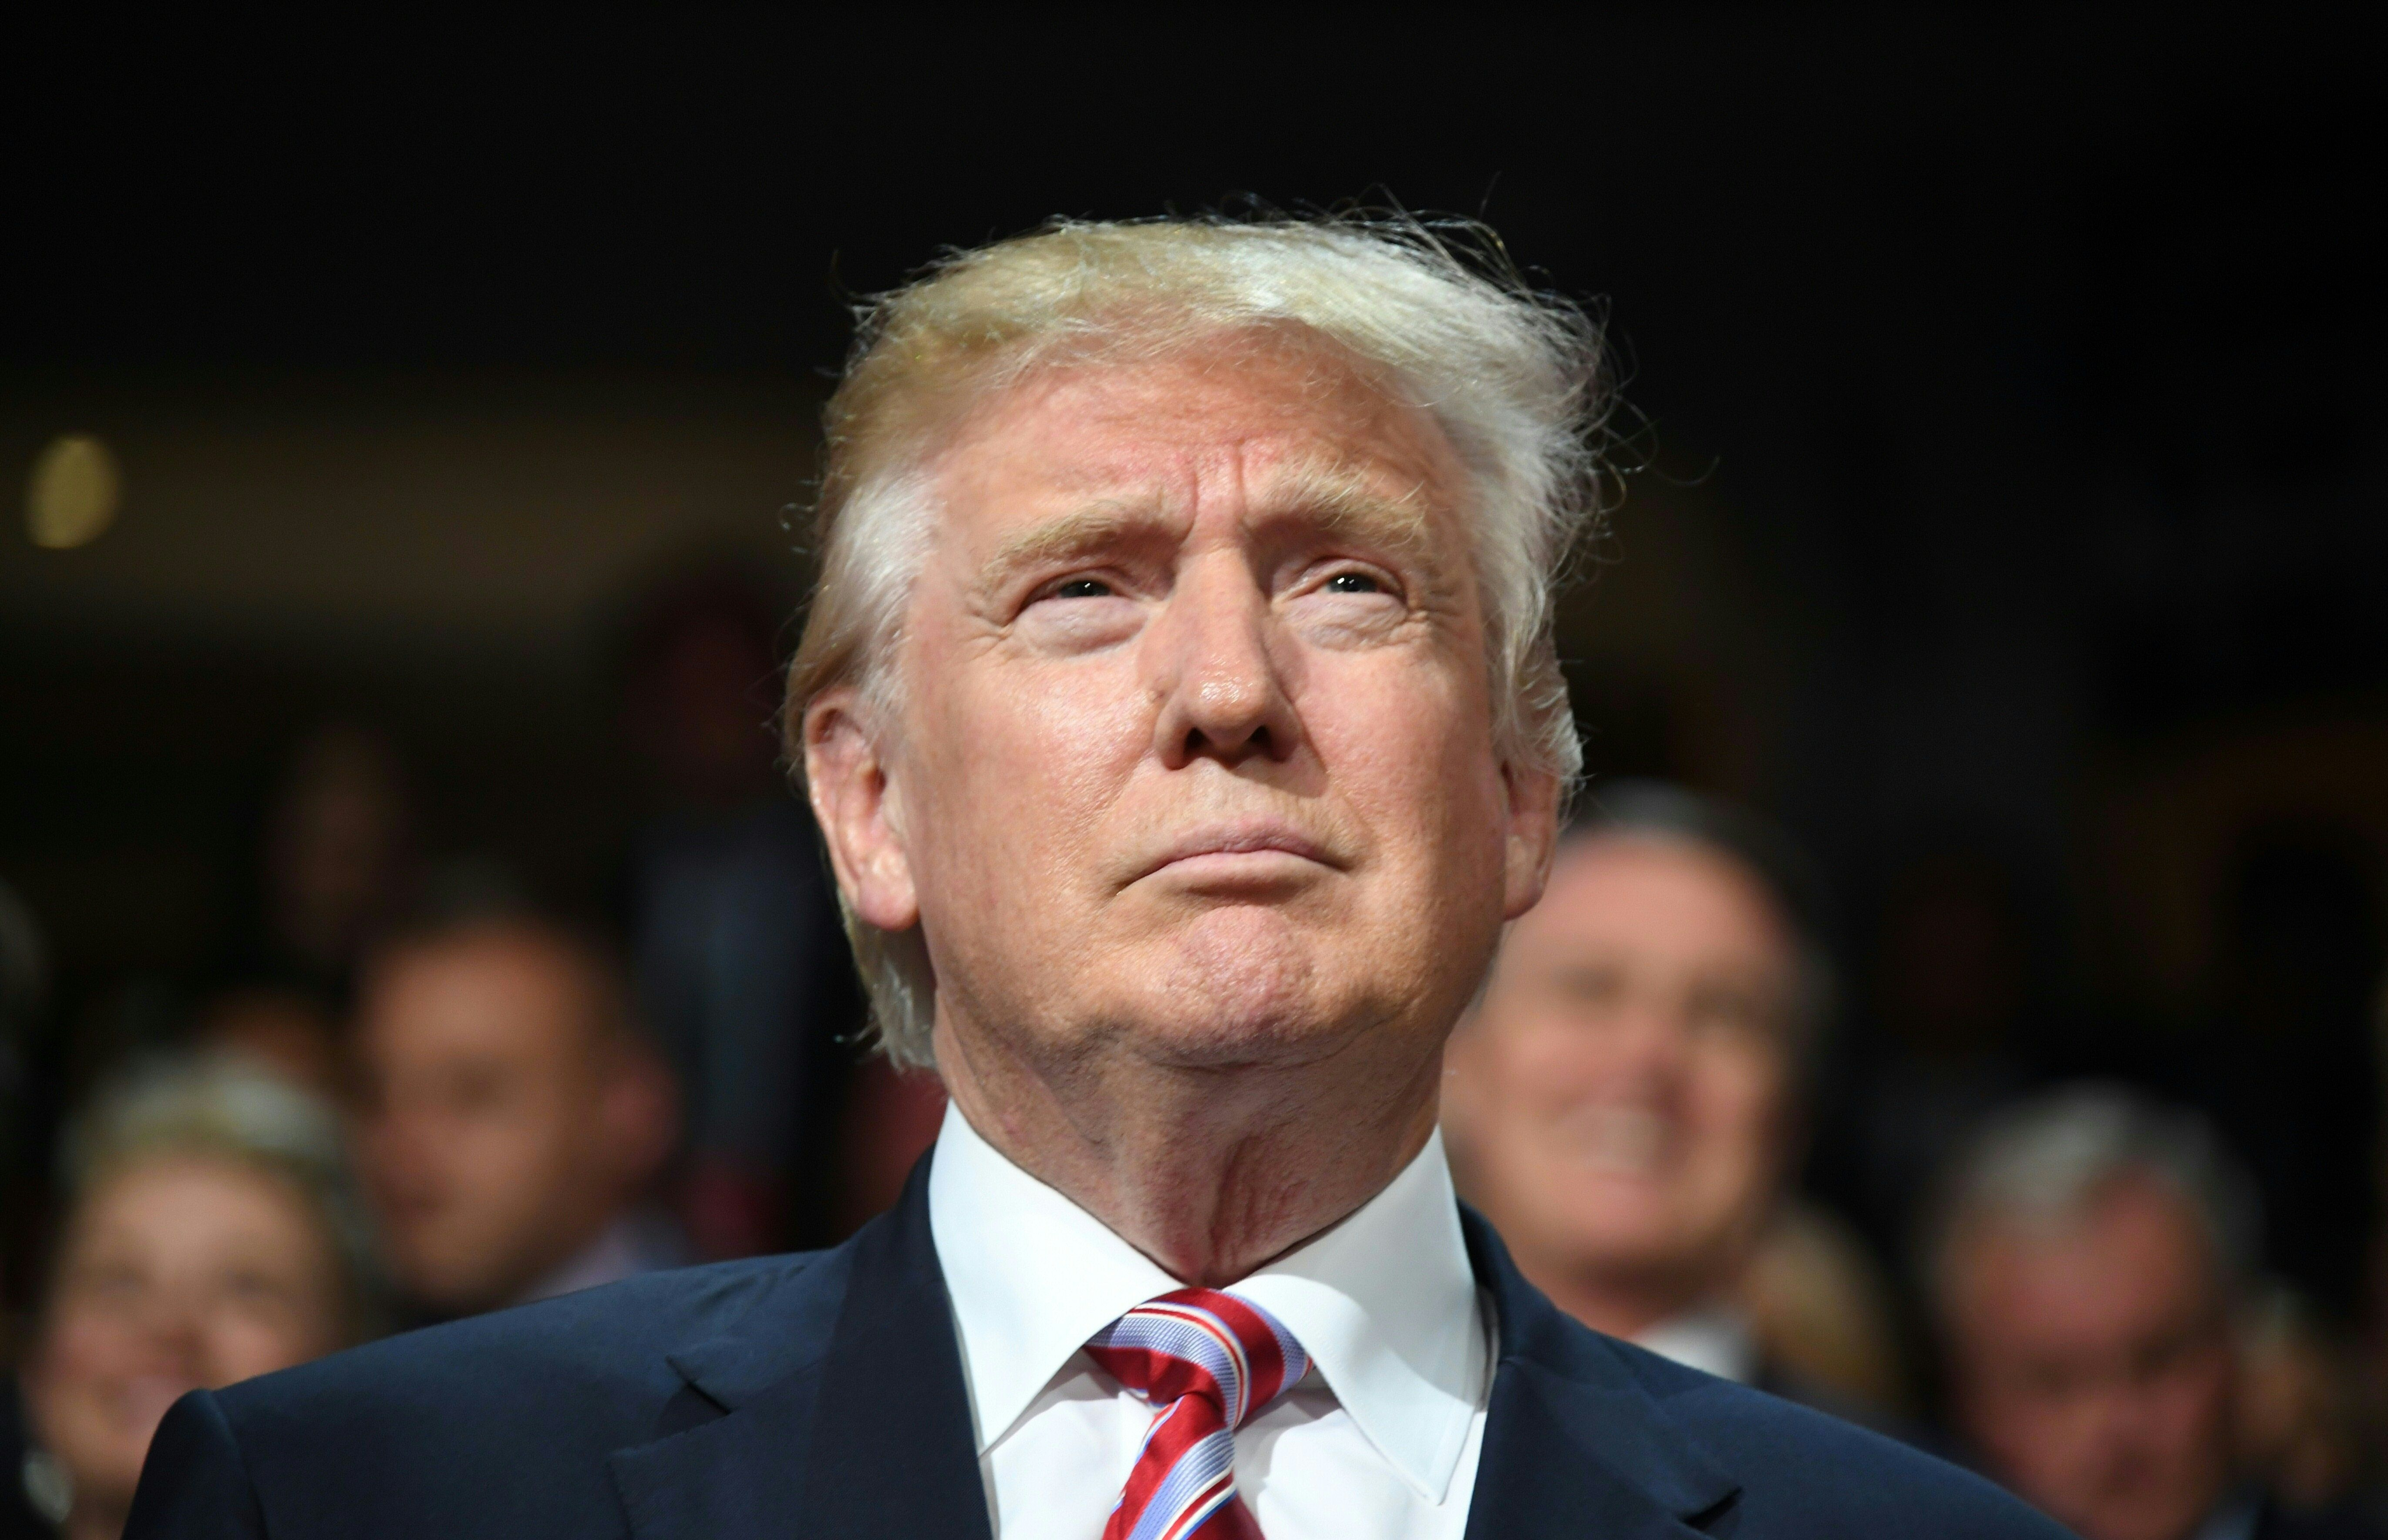 Republican presidential candidate Donald Trump is seen on day three of the Republican National Convention at the Quicken Loans Arena in Cleveland, Ohio on July 20, 2016.                                           / AFP / Jim WATSON        (Photo credit should read JIM WATSON/AFP/Getty Images)